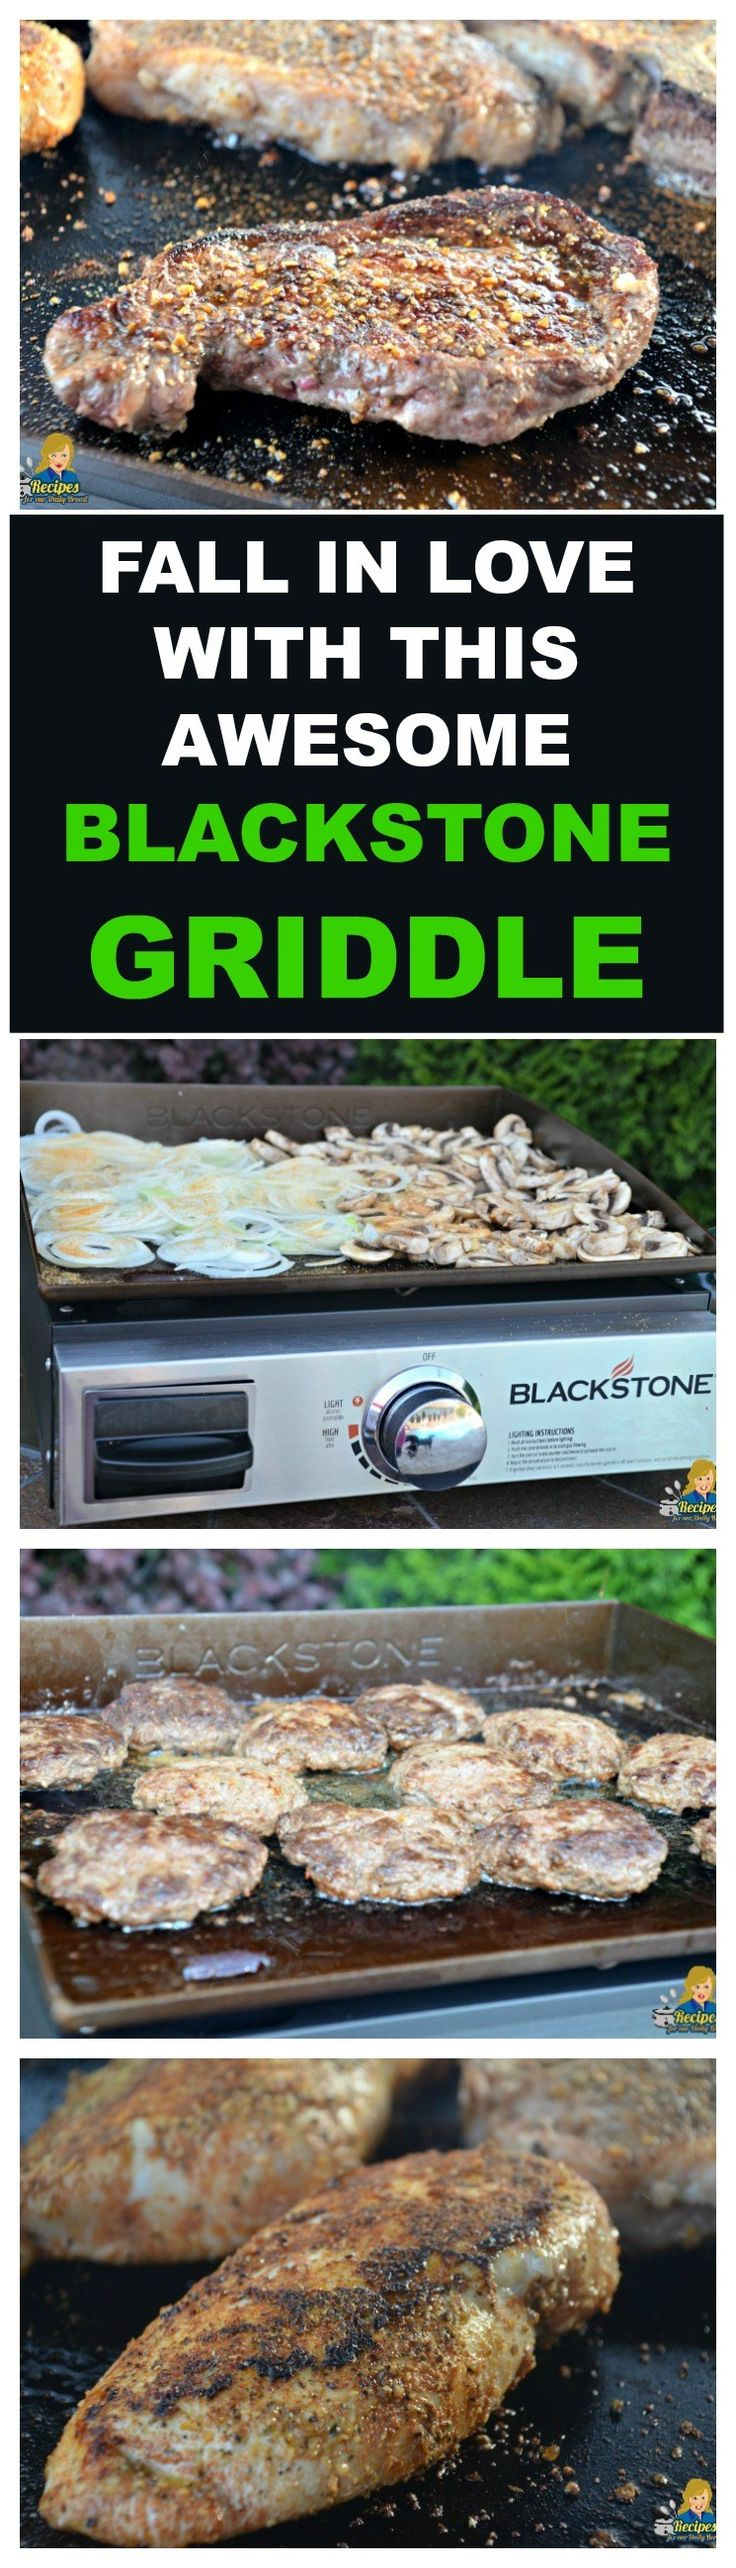 FALL IN LOVE WITH THIS AWESOME BLACKSTONE GRIDDLE